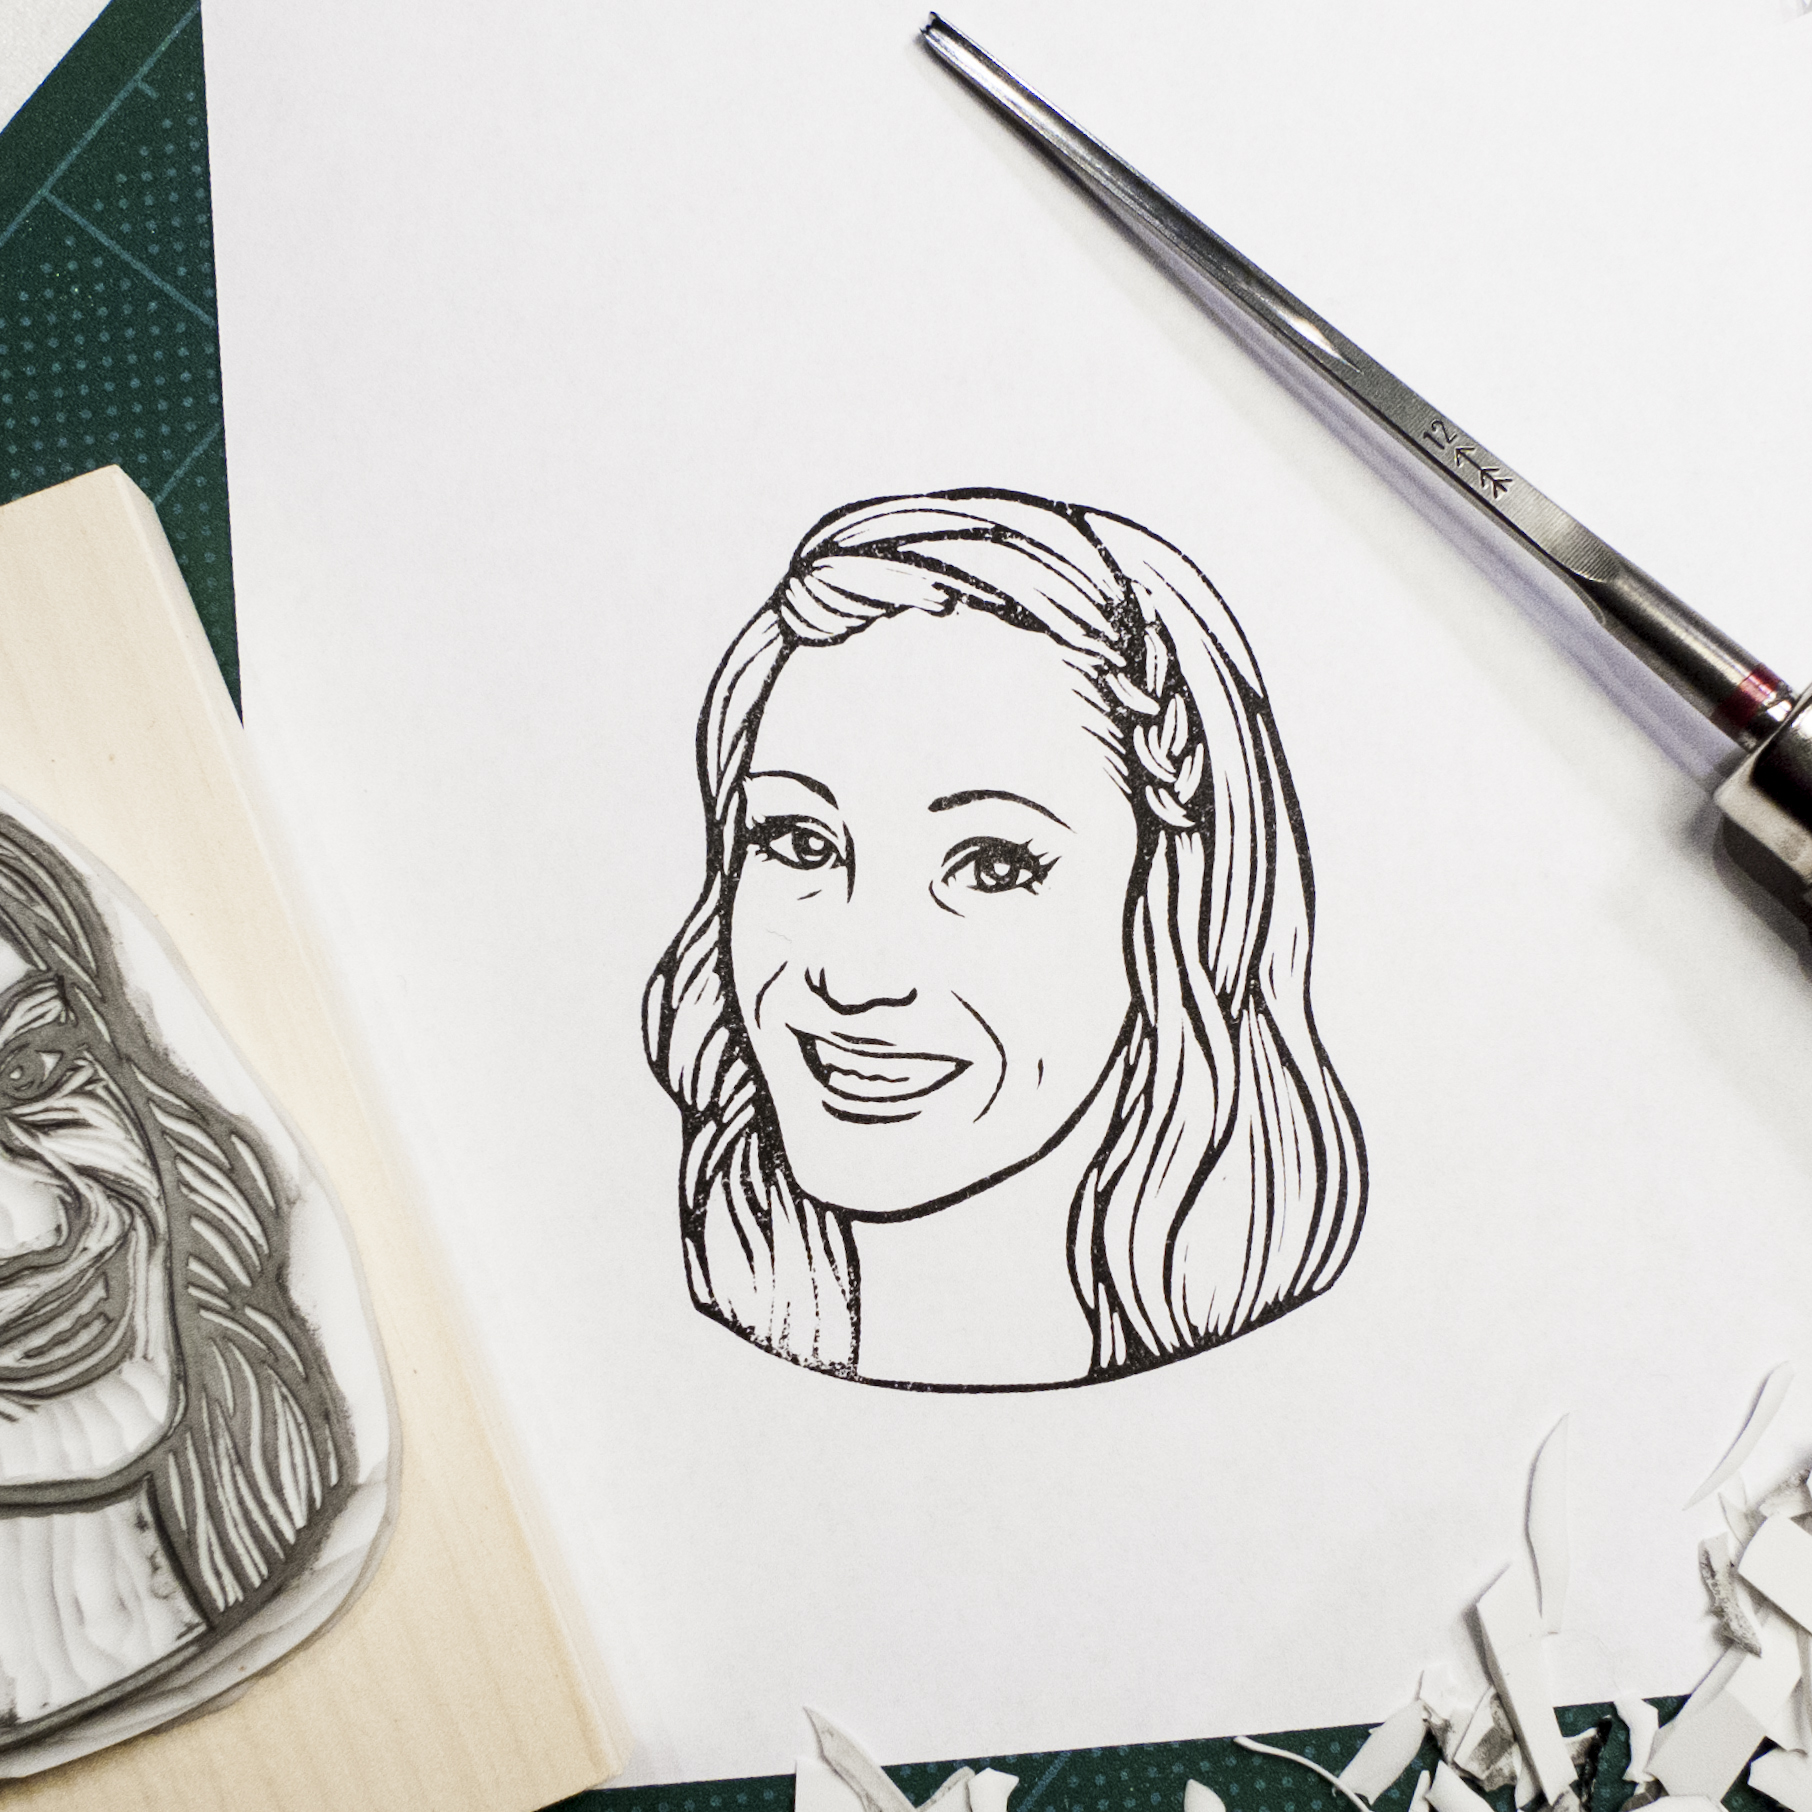 The girl commissioned a portrait stamp of her boyfriend from me a year ago; this time he - now her husband - wants to give back a stamp of her as a Christmas present. <3